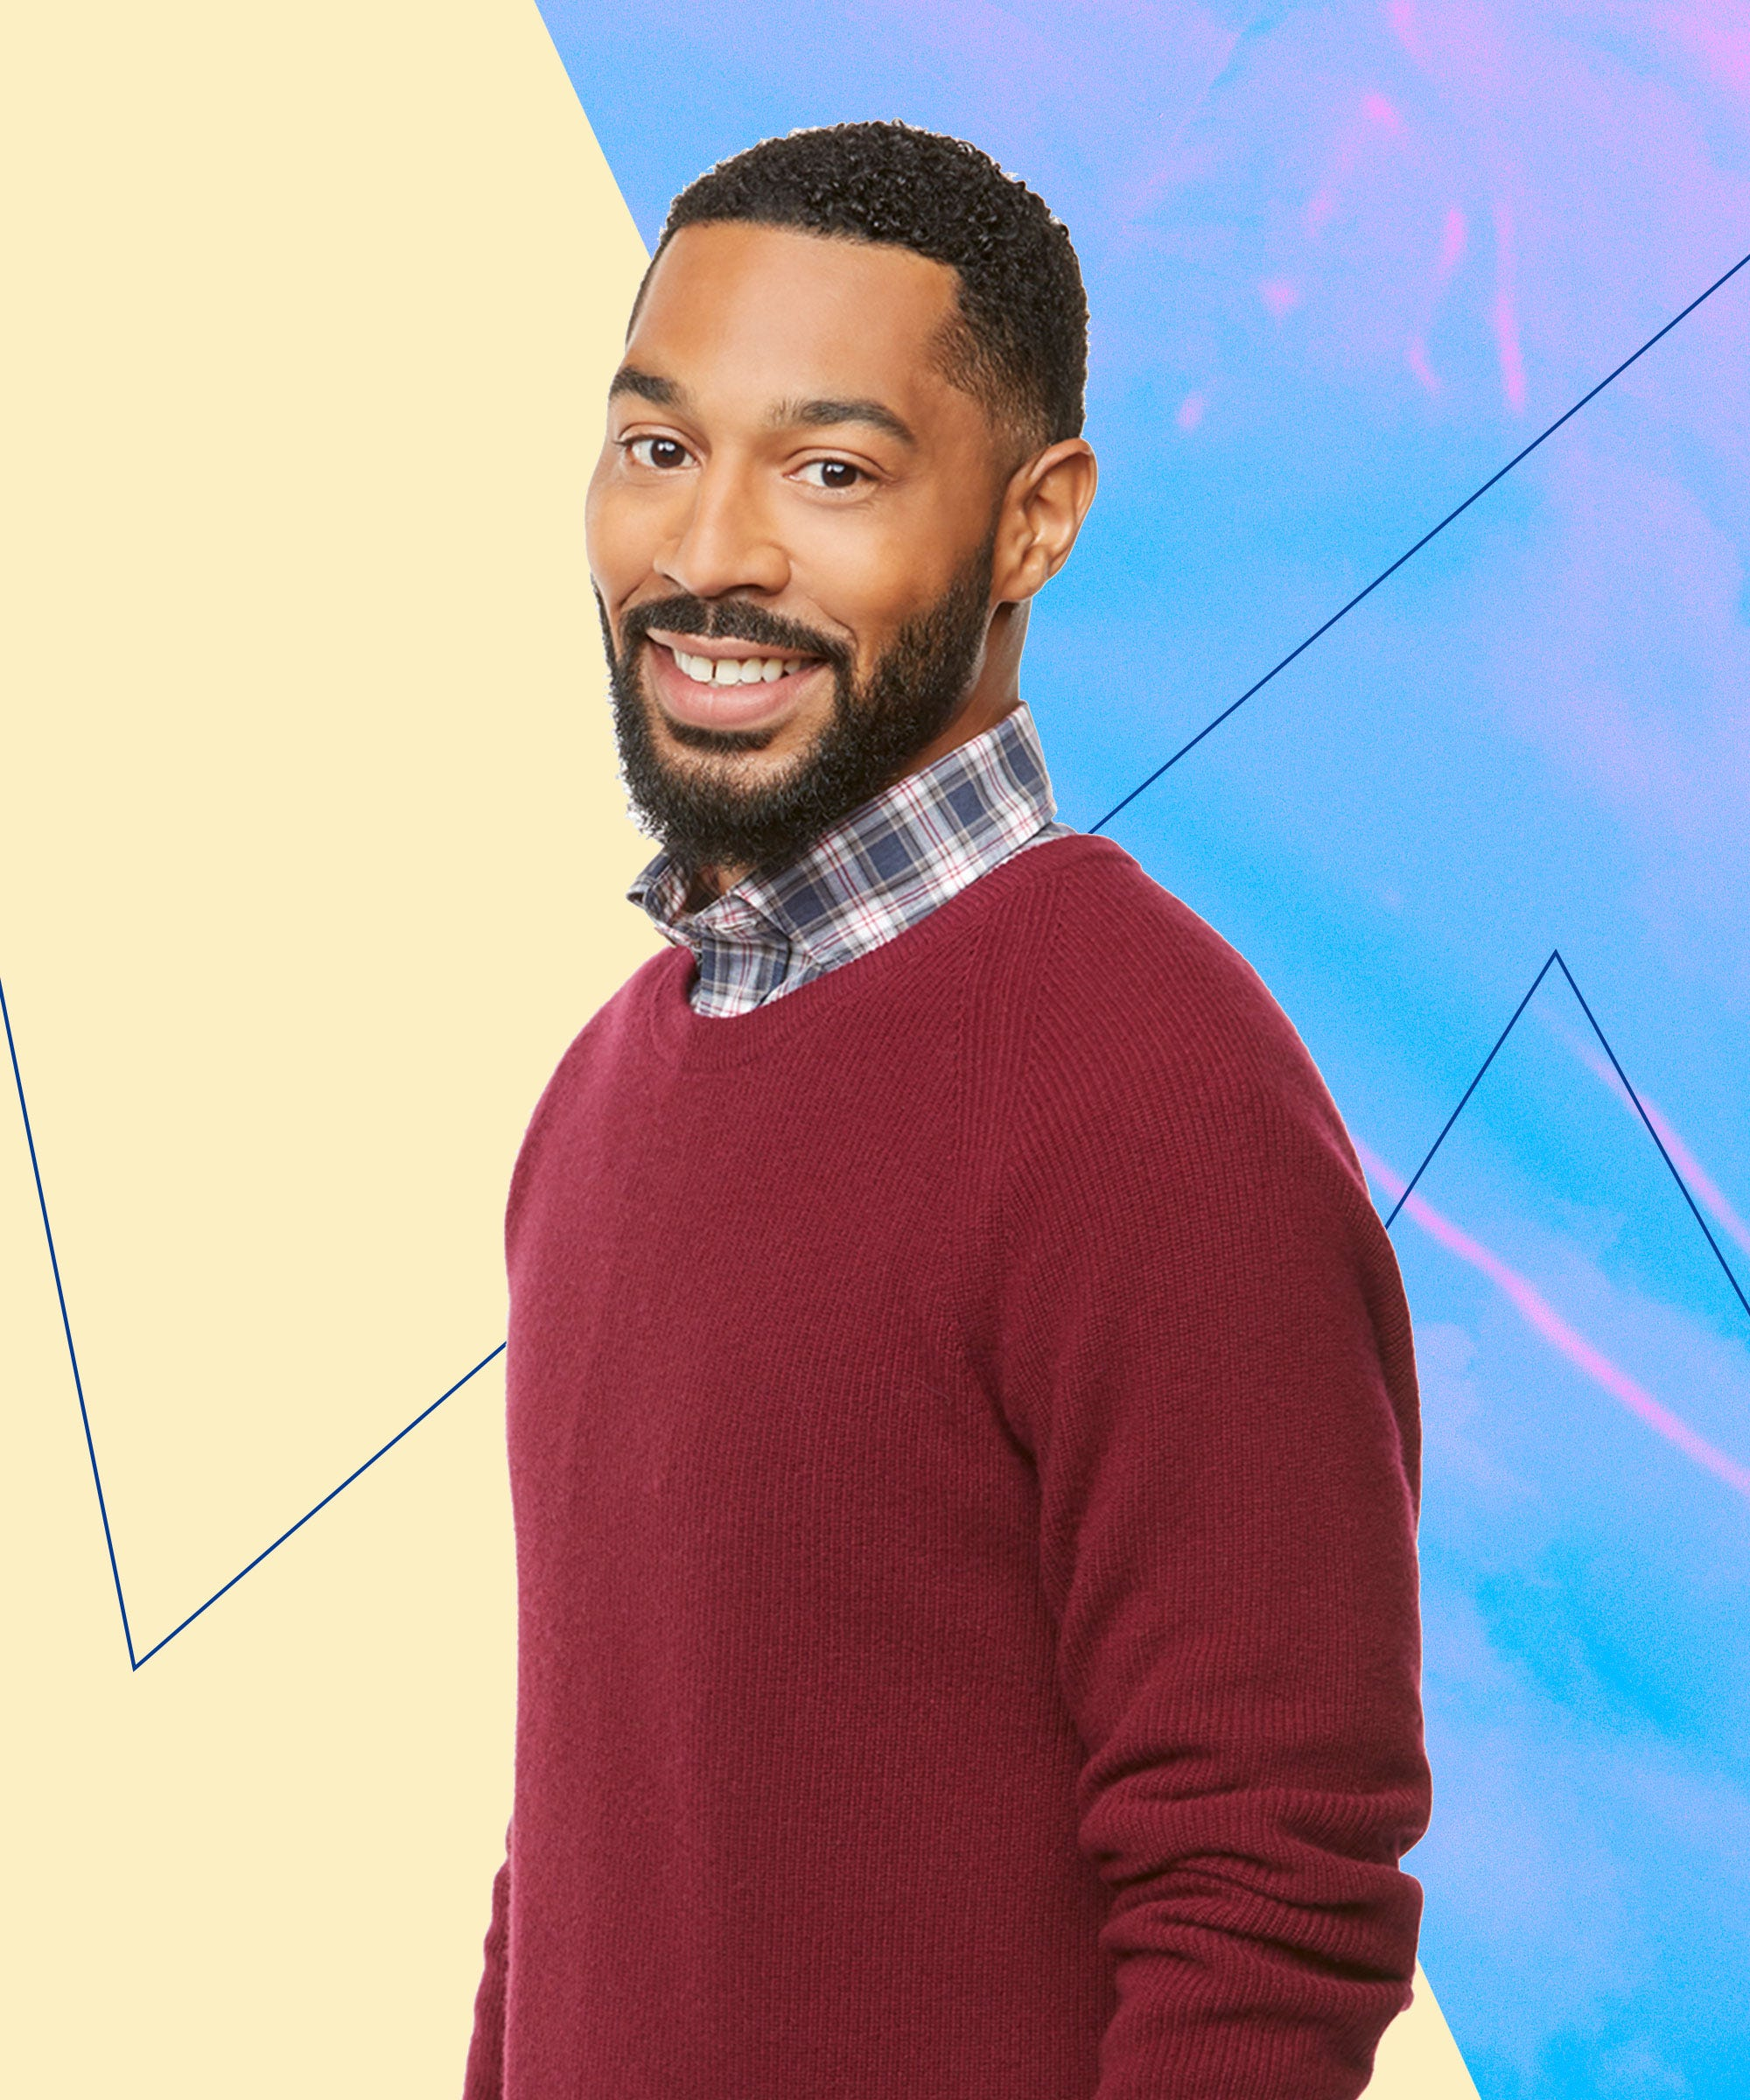 Crushing On Issa Rae's Work Crush From Little? Meet The Actor Who Plays Him, Tone Bell